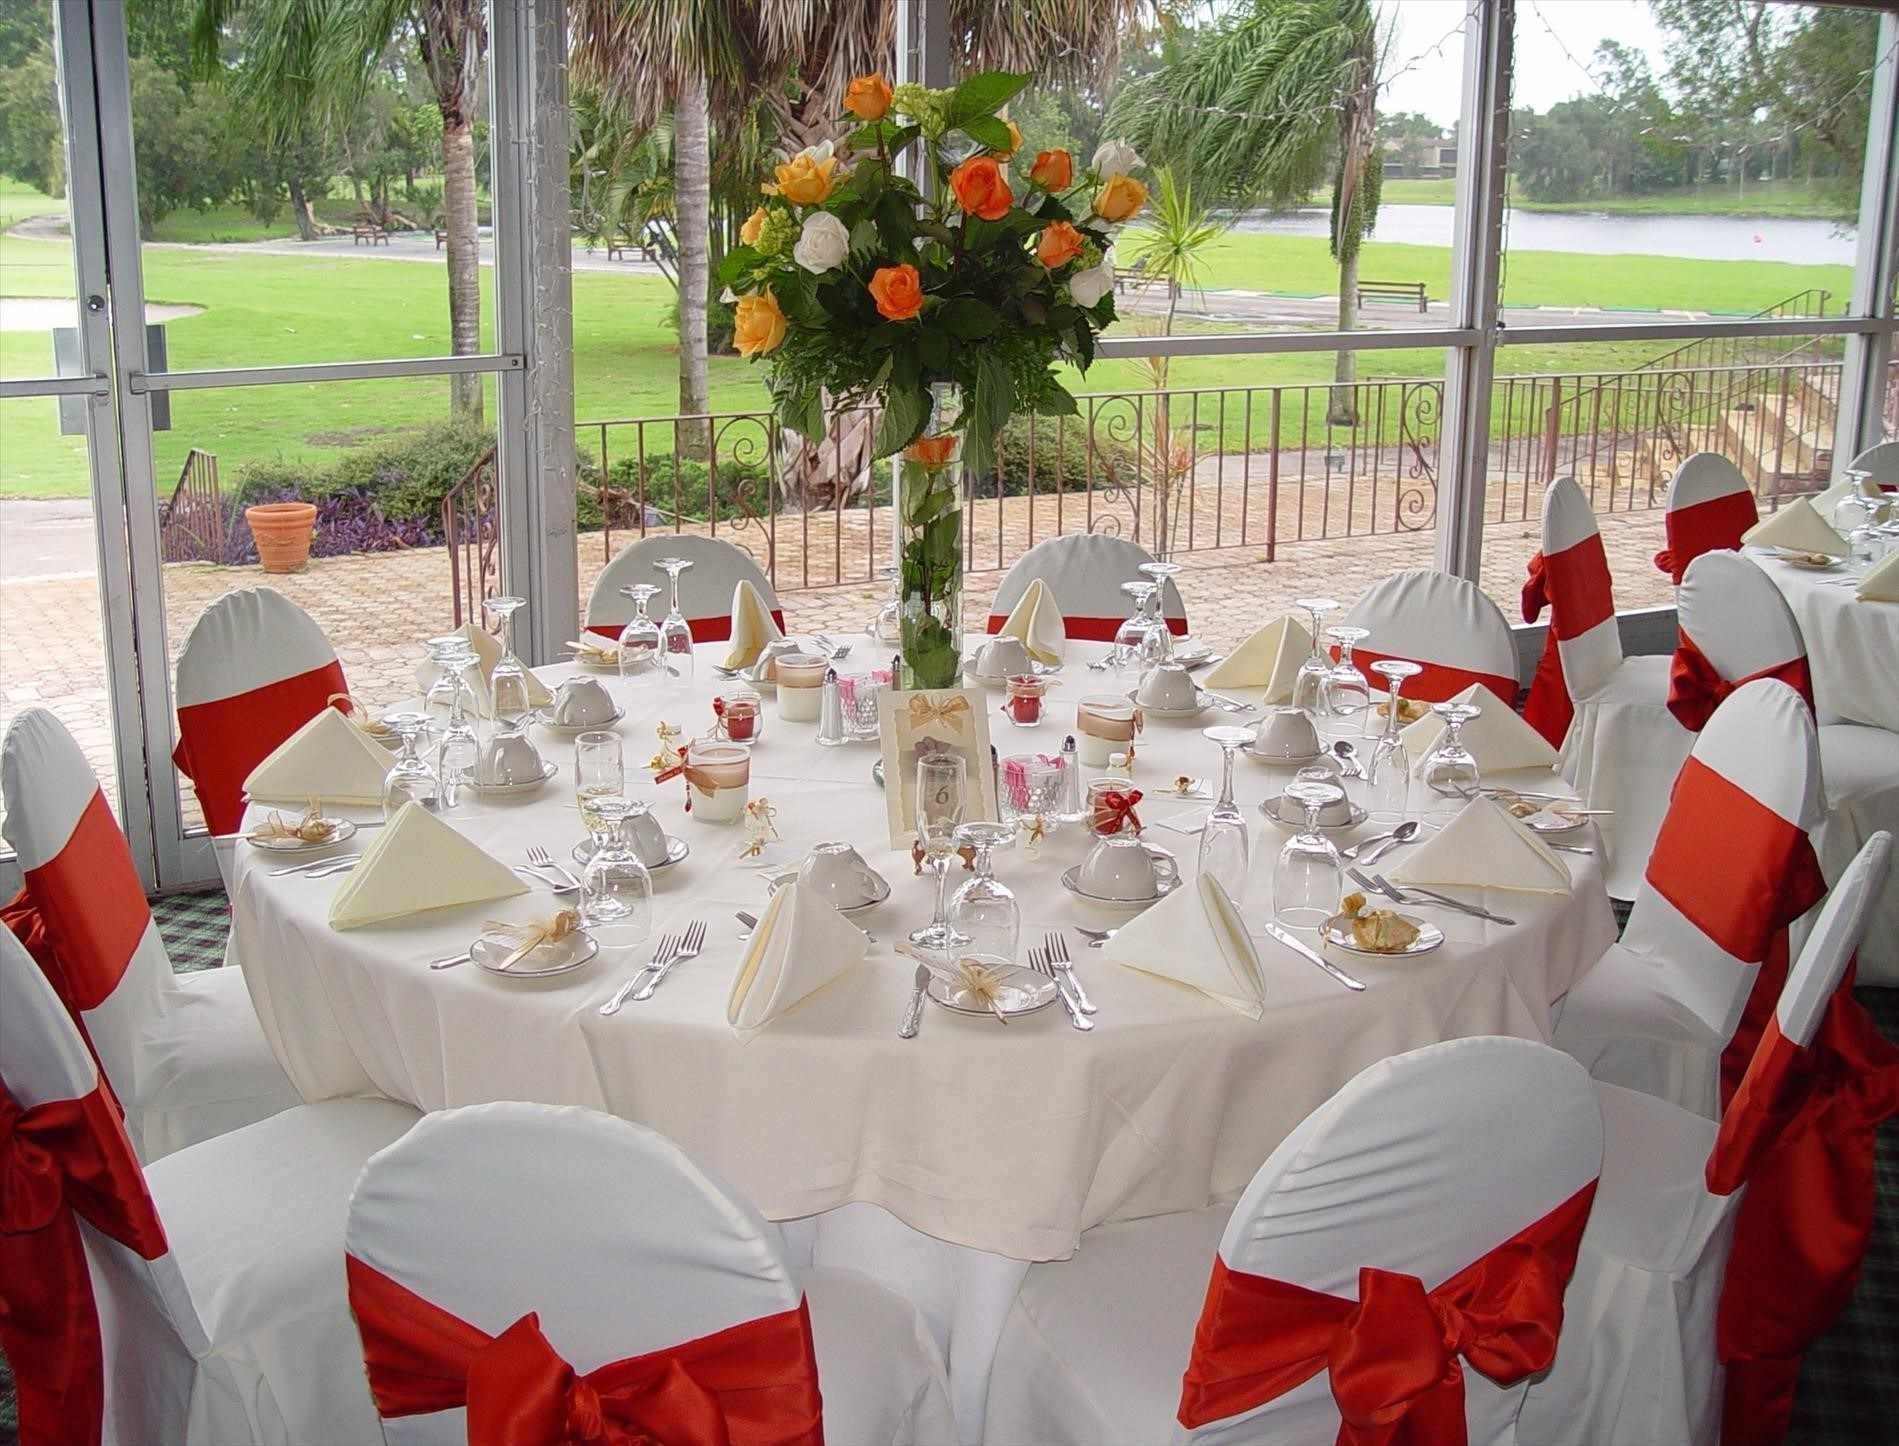 10 Unique Wedding Reception Ideas On A Budget best wedding reception ideas outside on a budget diy for concept and 2020